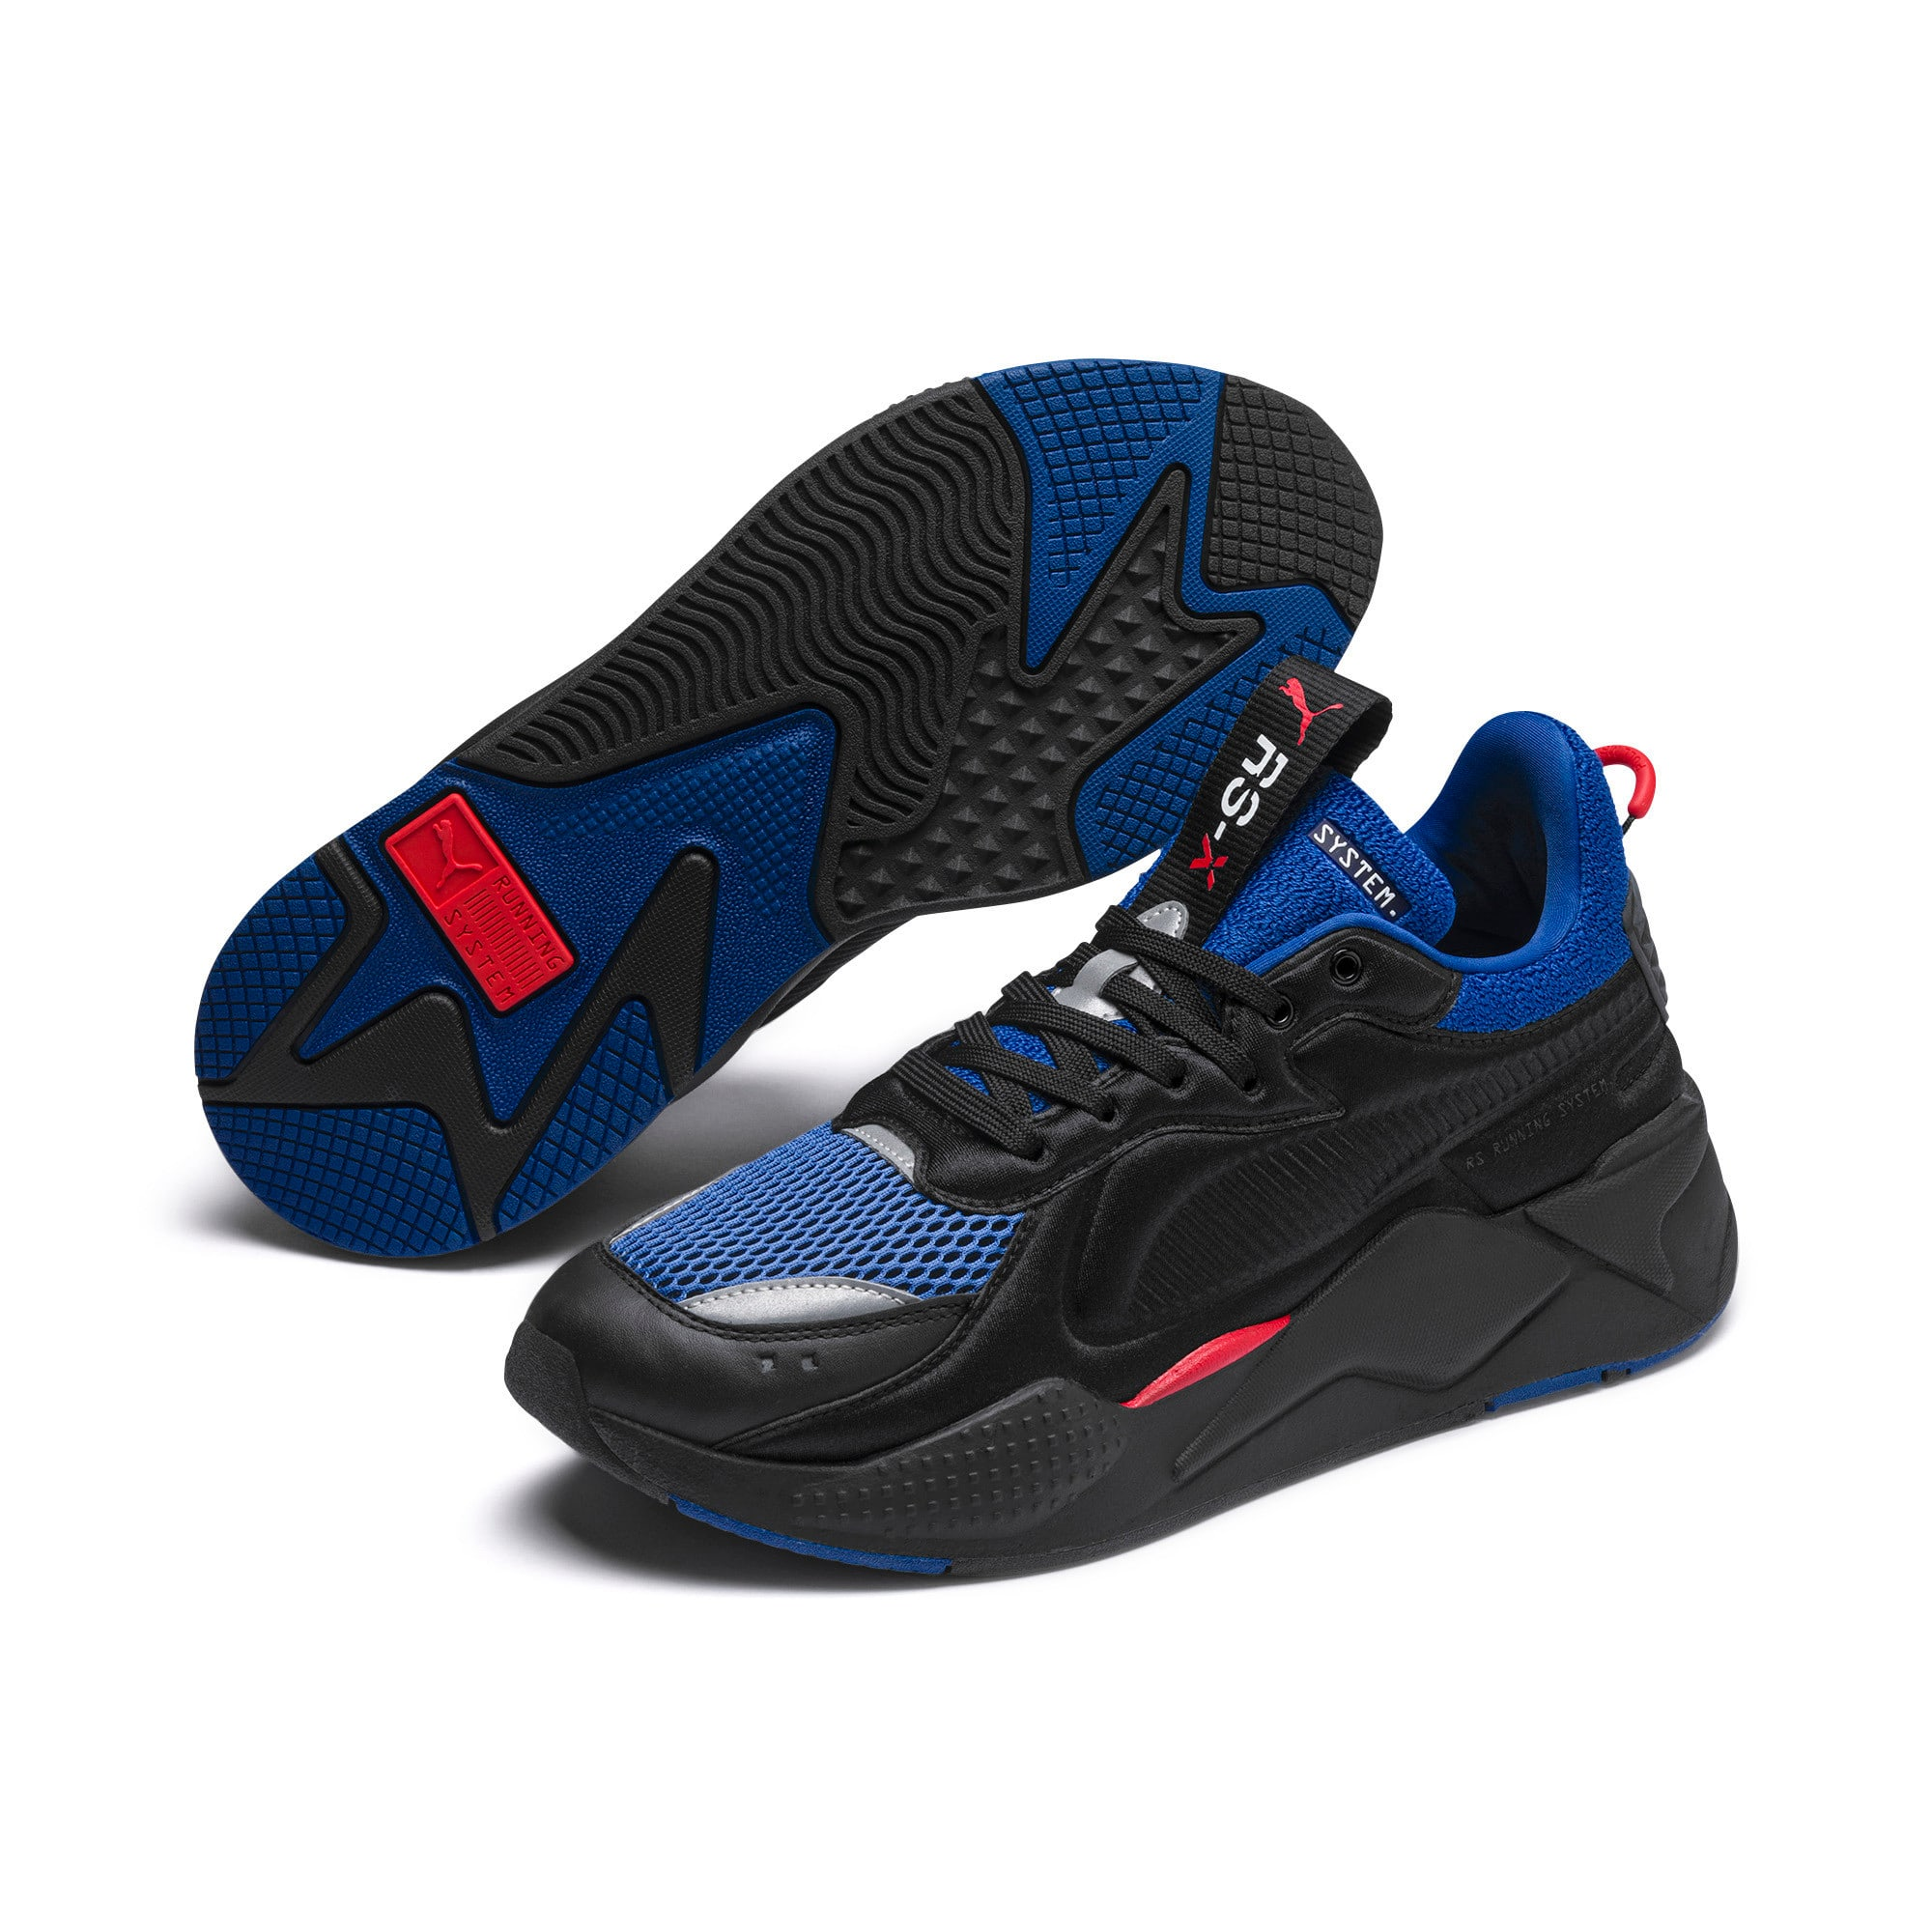 RS-X Softcase Trainers, Puma Black-Galaxy Blue, large